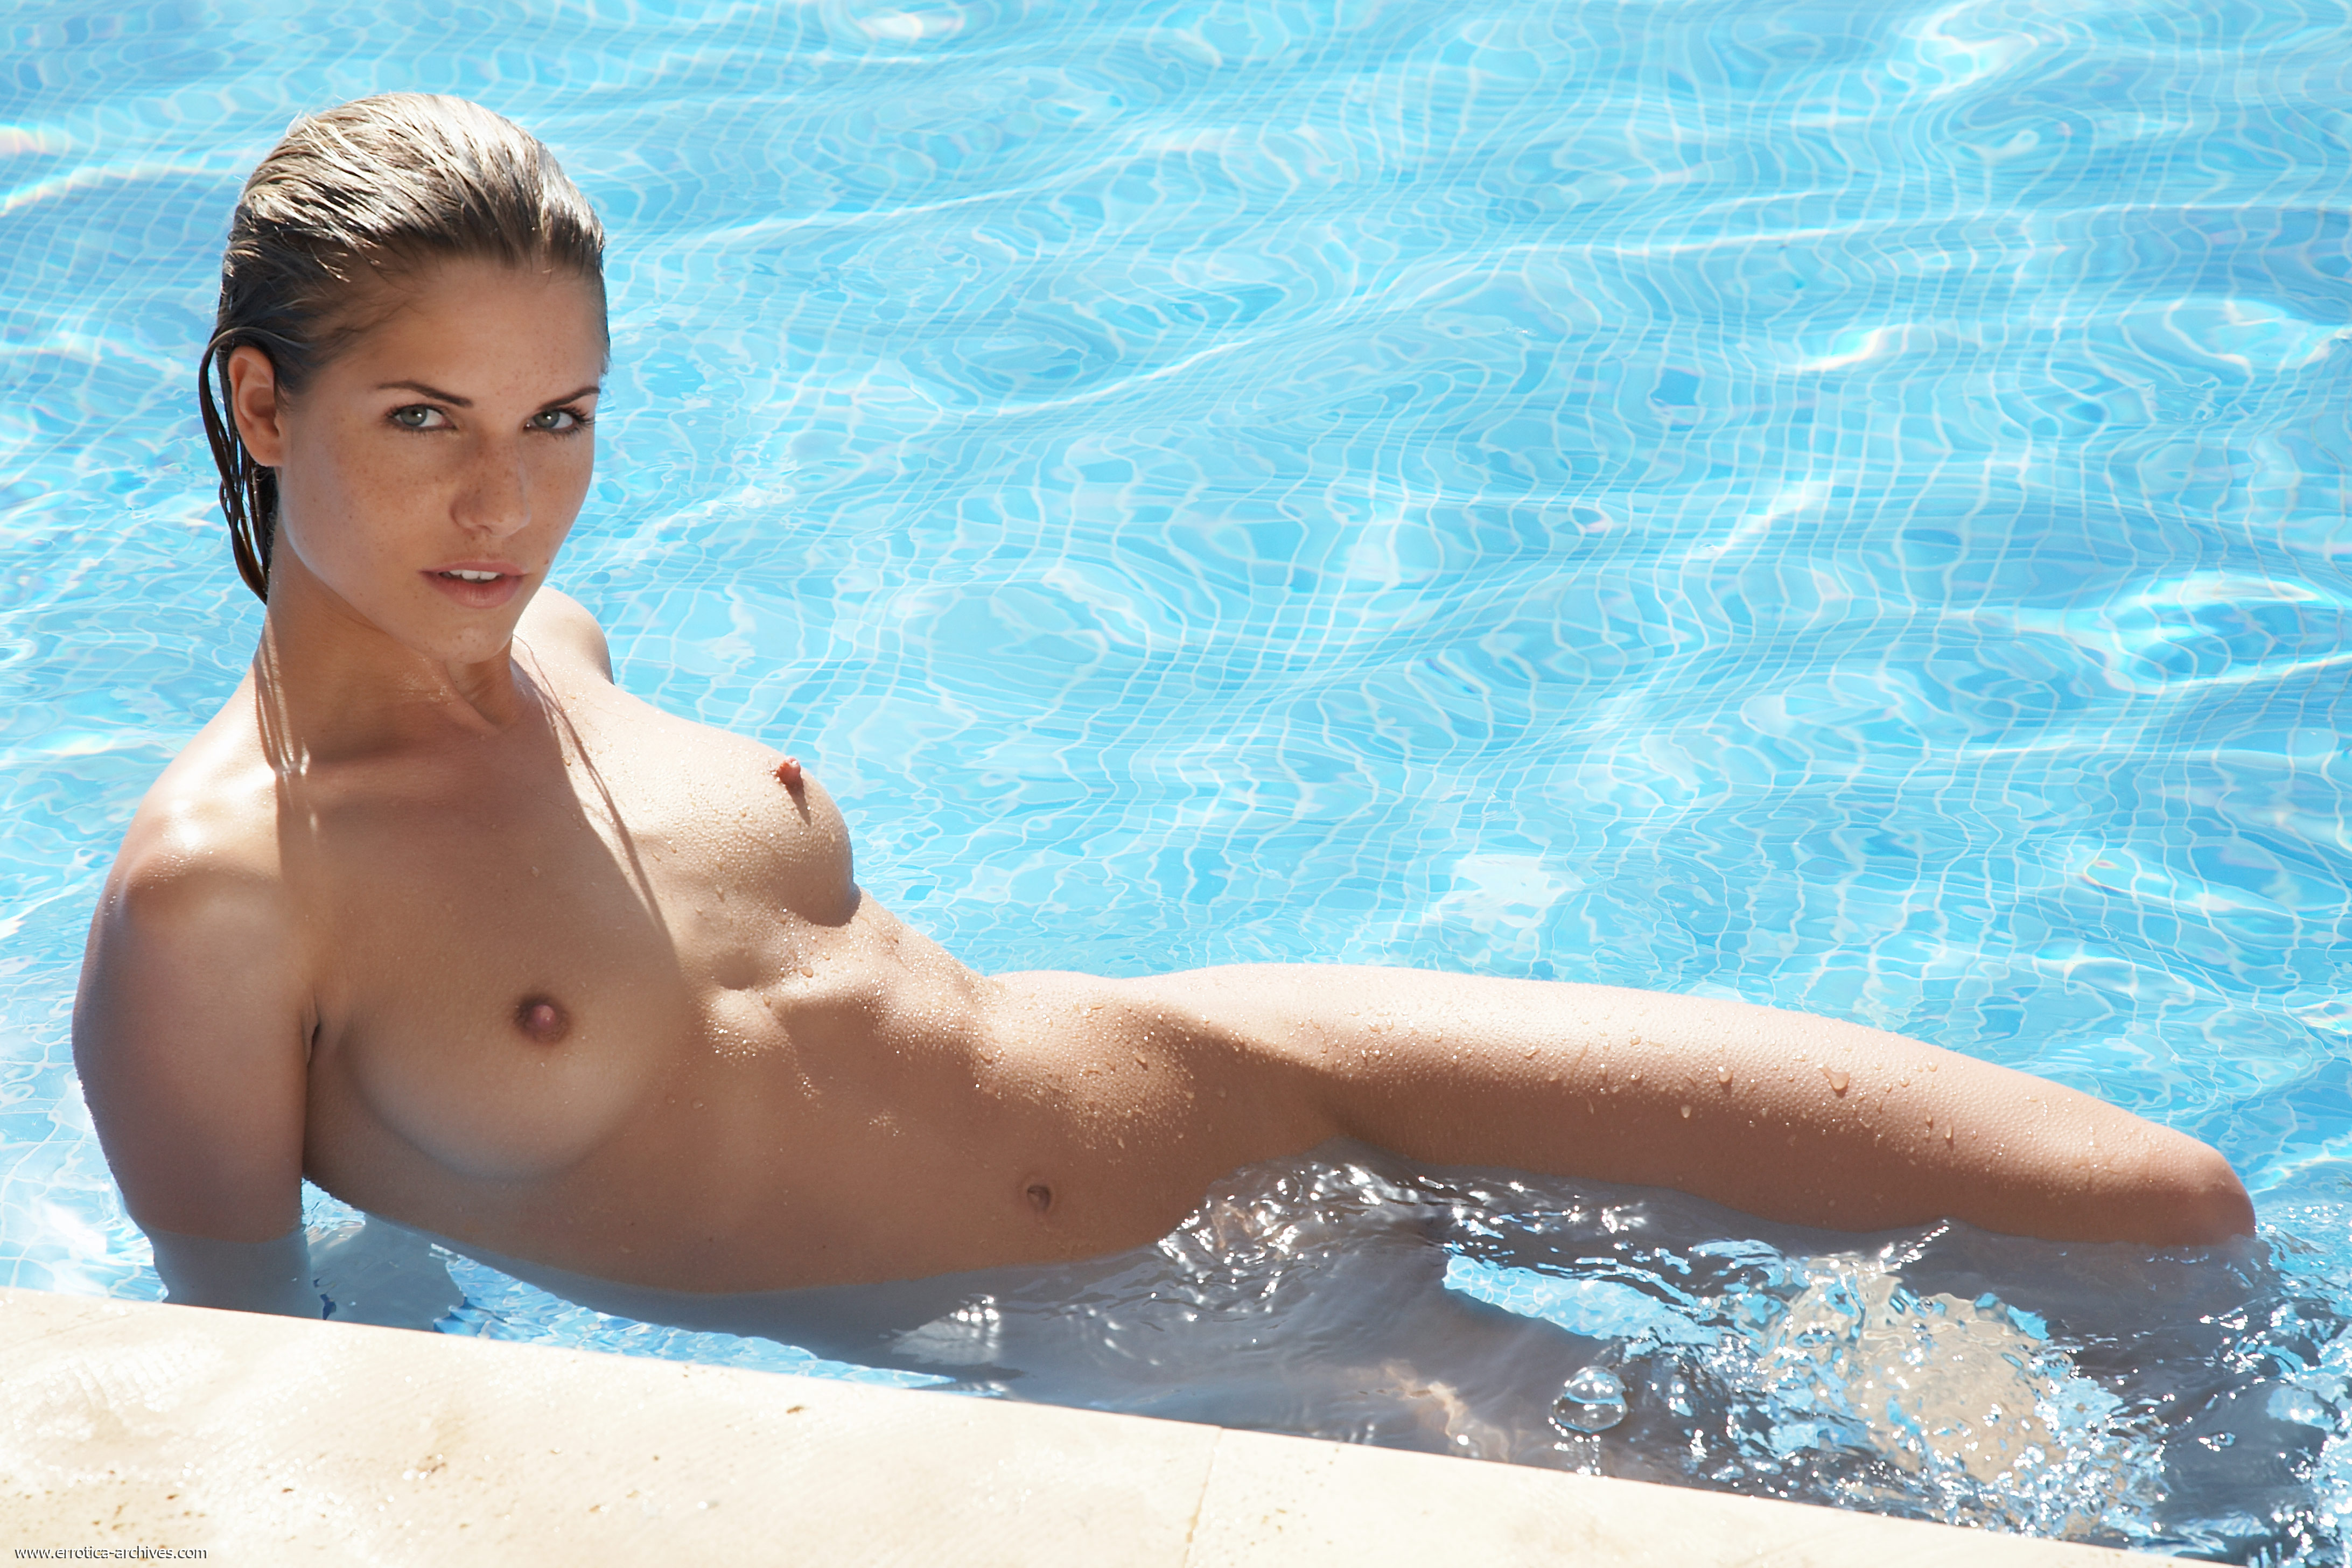 girls-nude-in-pool-wet-photo-mix-vol6-91